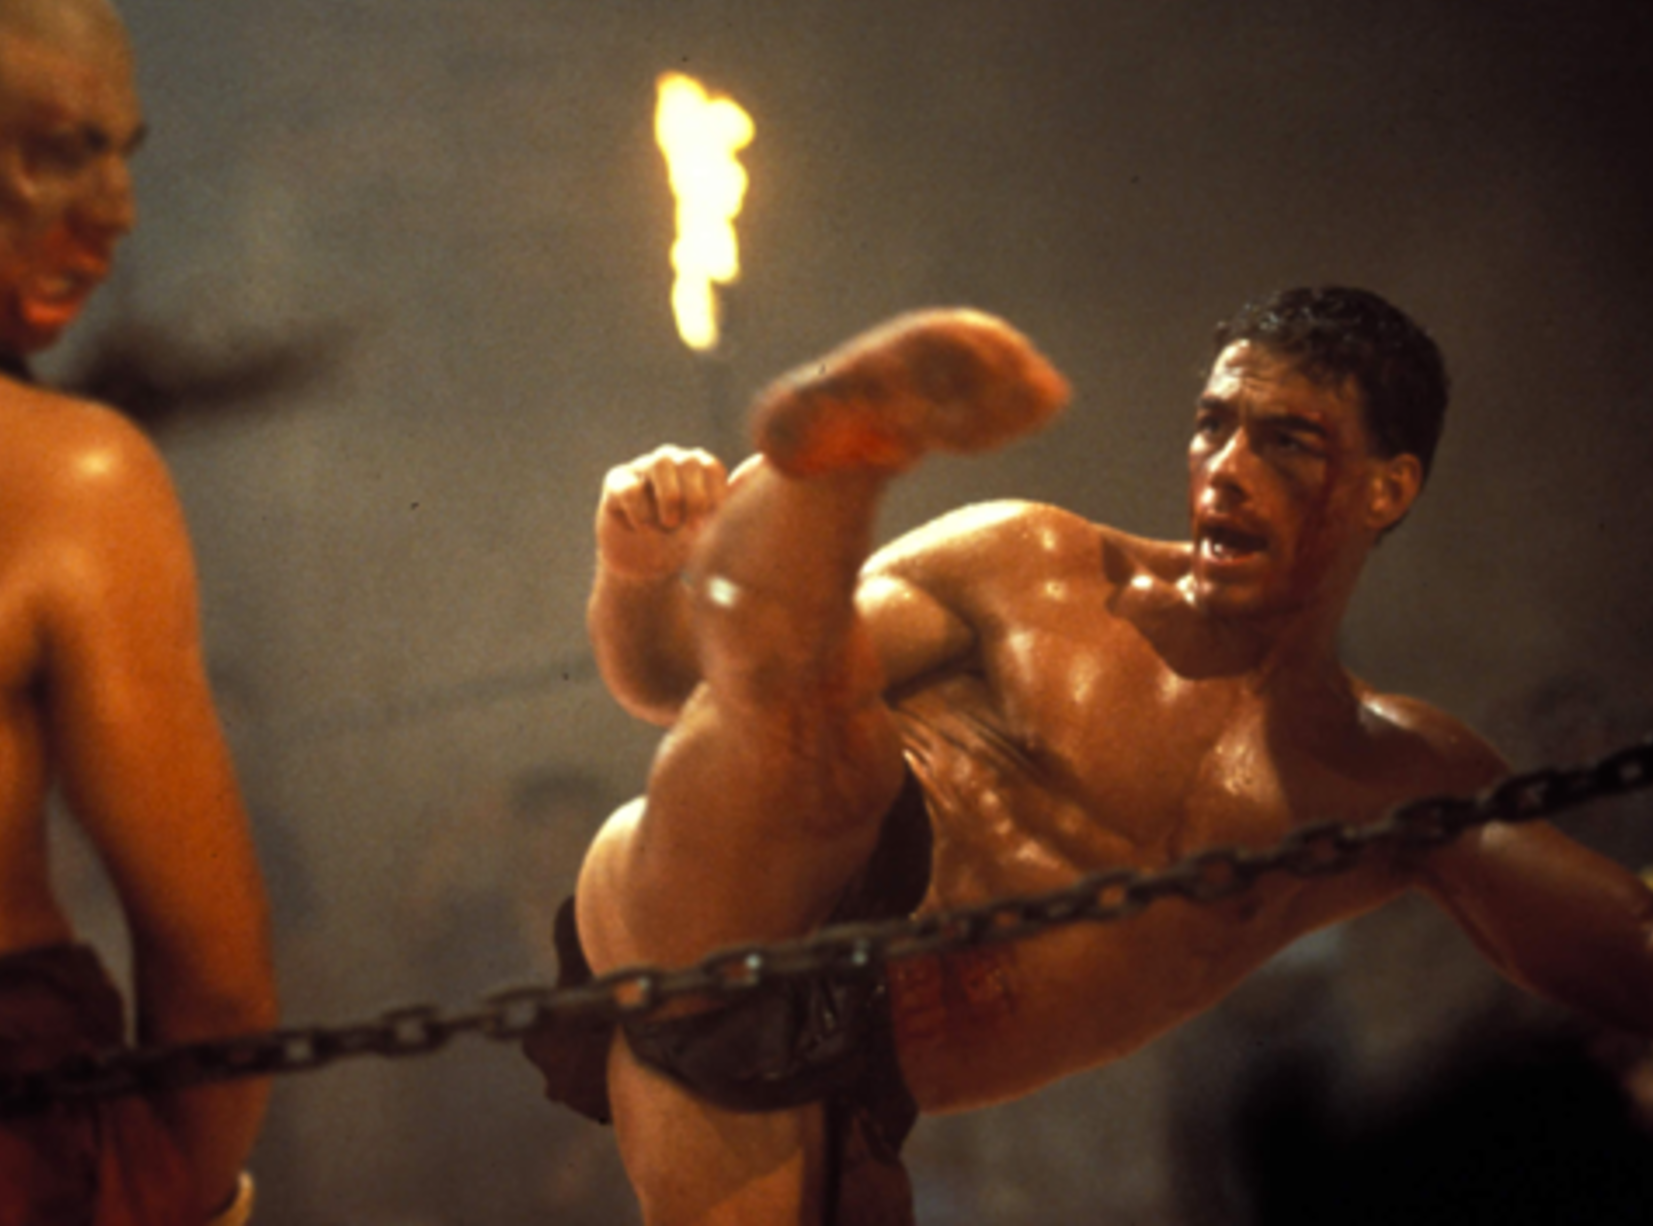 496879837 0 e1619525190978 25 Crotch-Punching Facts About Jean-Claude Van Damme's 1988 Film Bloodsport